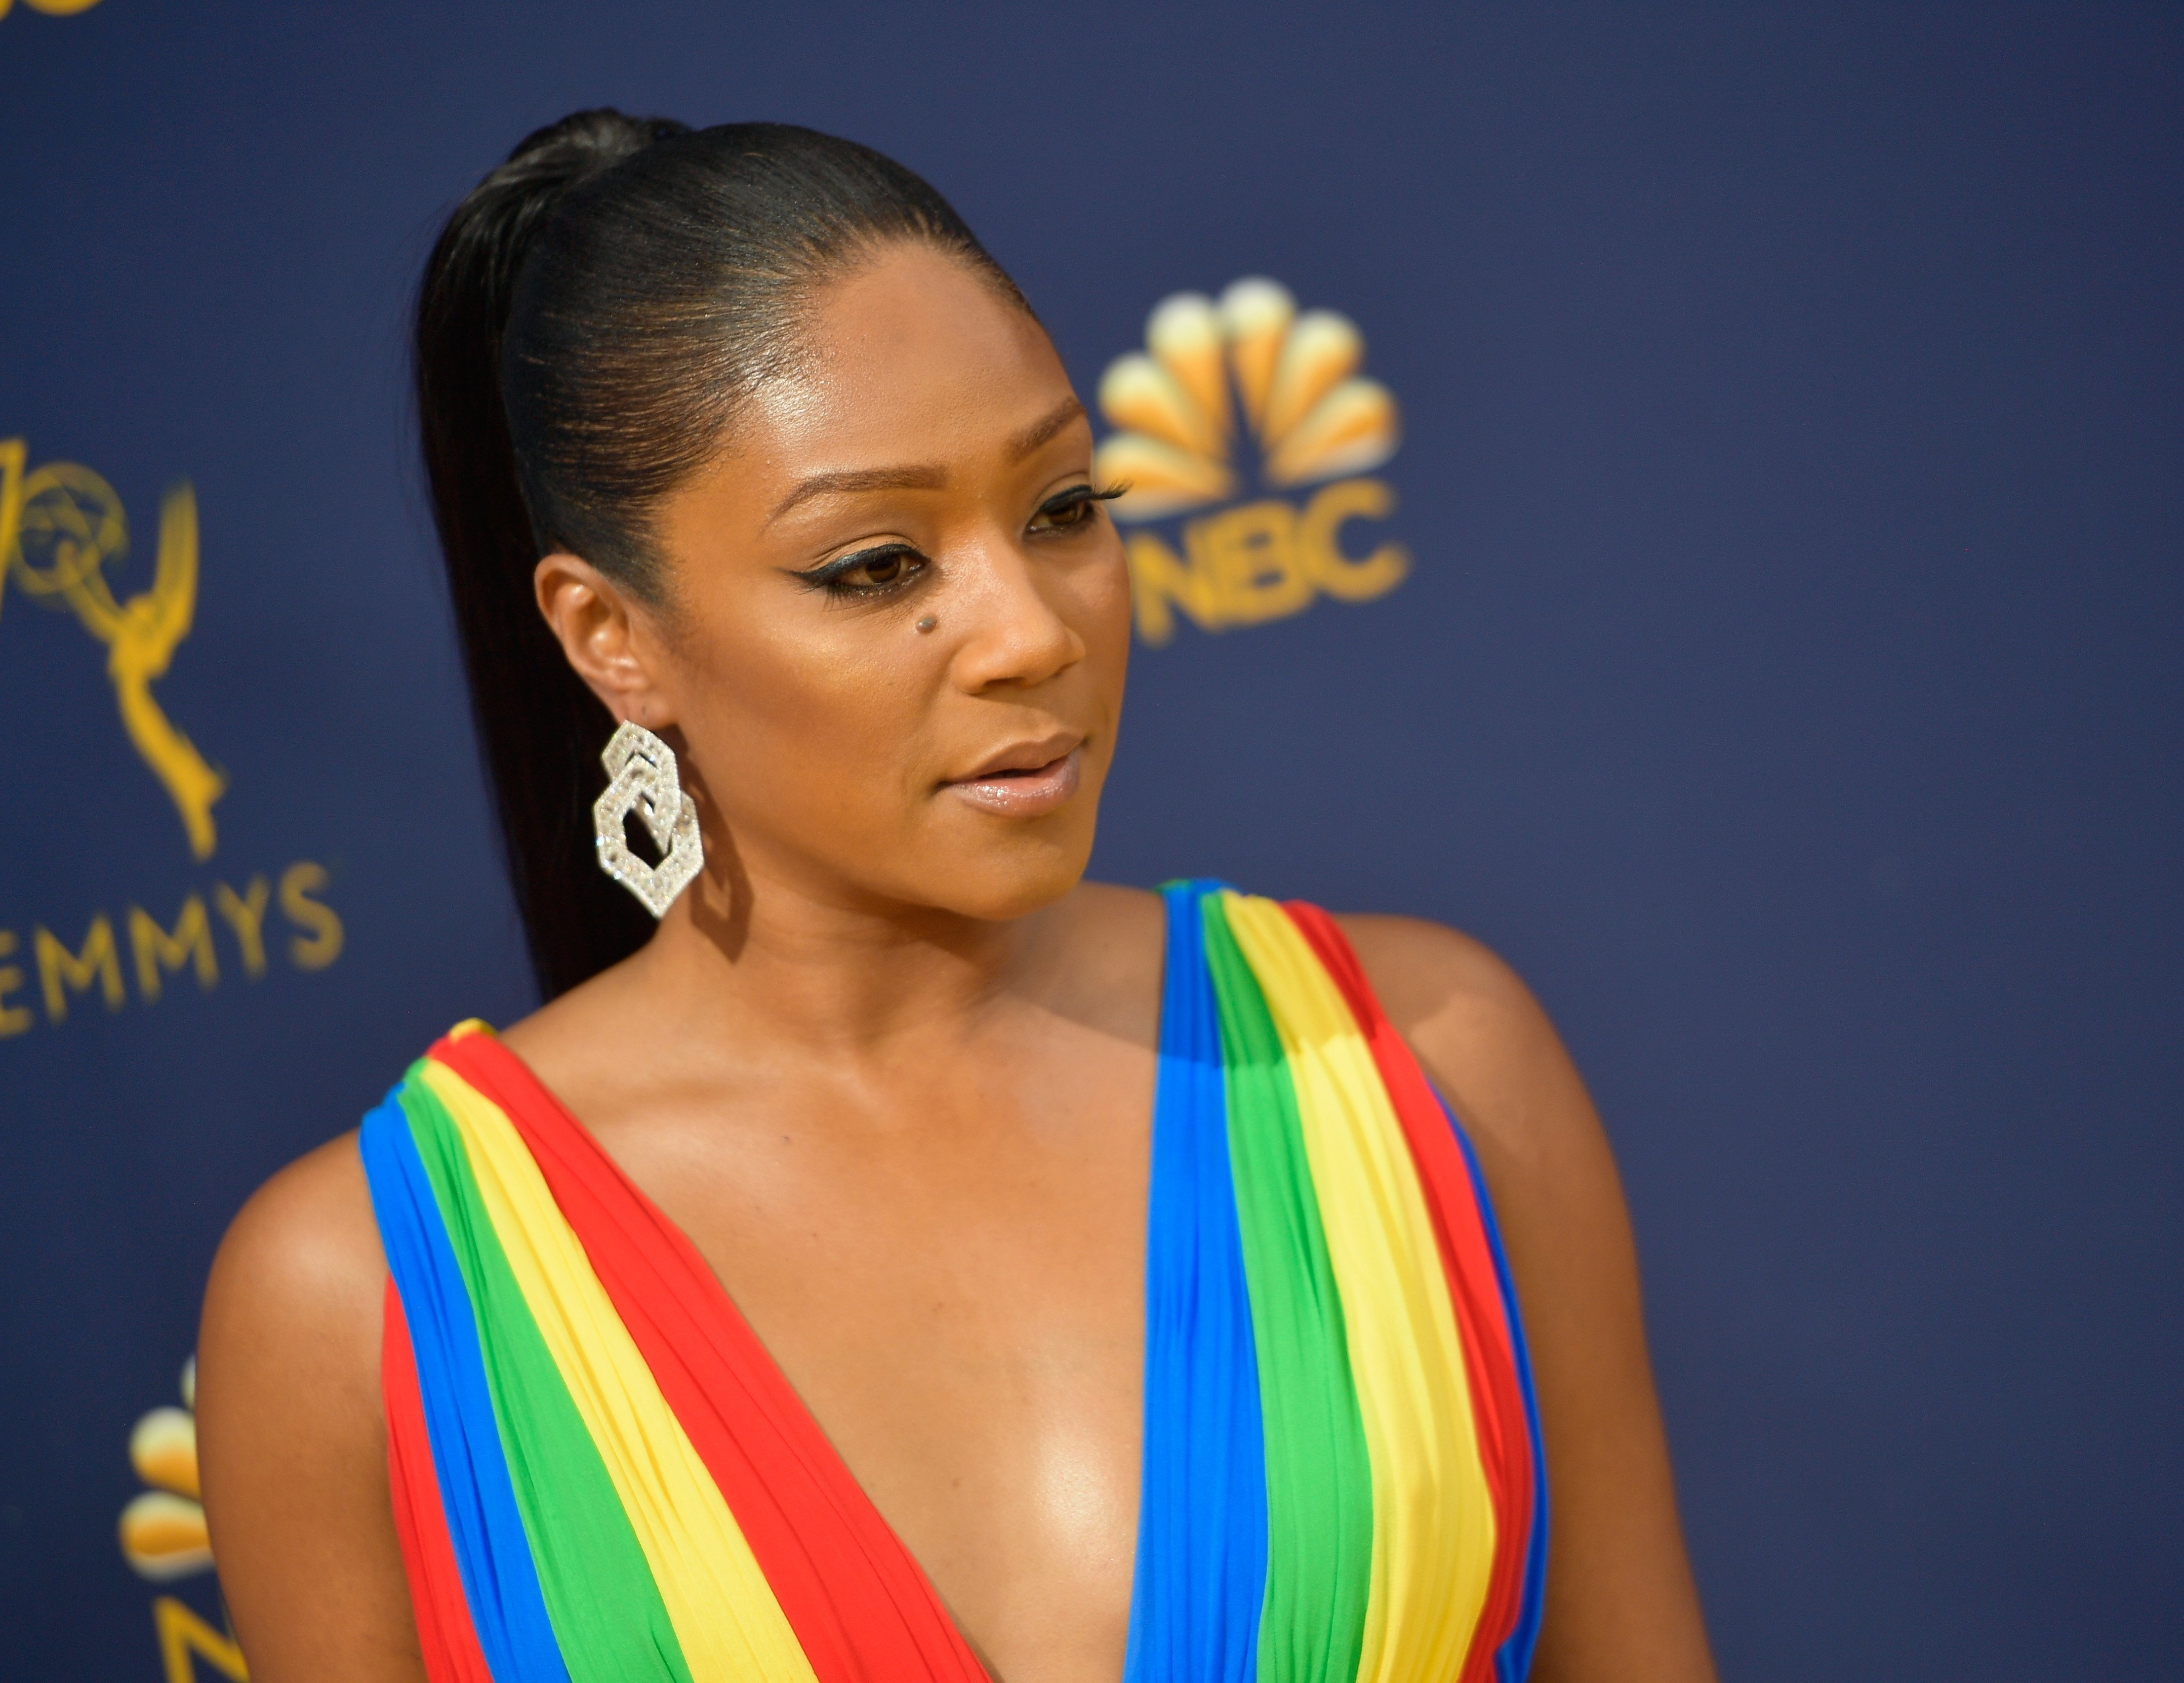 Tiffany Haddish at the 70th Emmy Awards on September 17, 2018 in Los Angeles, California. | Source: Getty Images